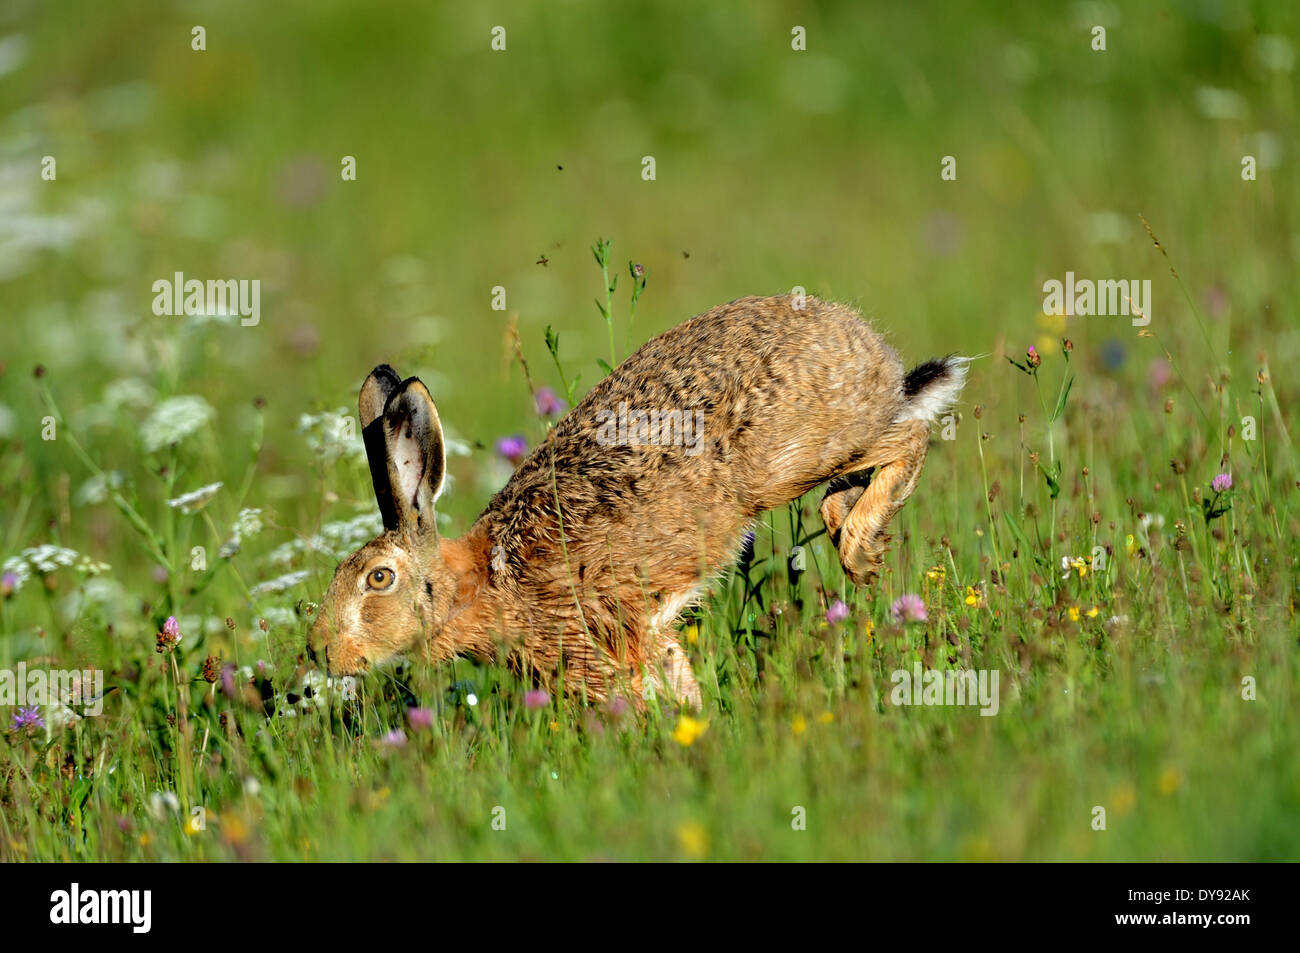 Hare Rabbit Lepus europaeus Pallas brown hare bunny field hare flower meadow rodent nature wild animal game animal animals Ger - Stock Image